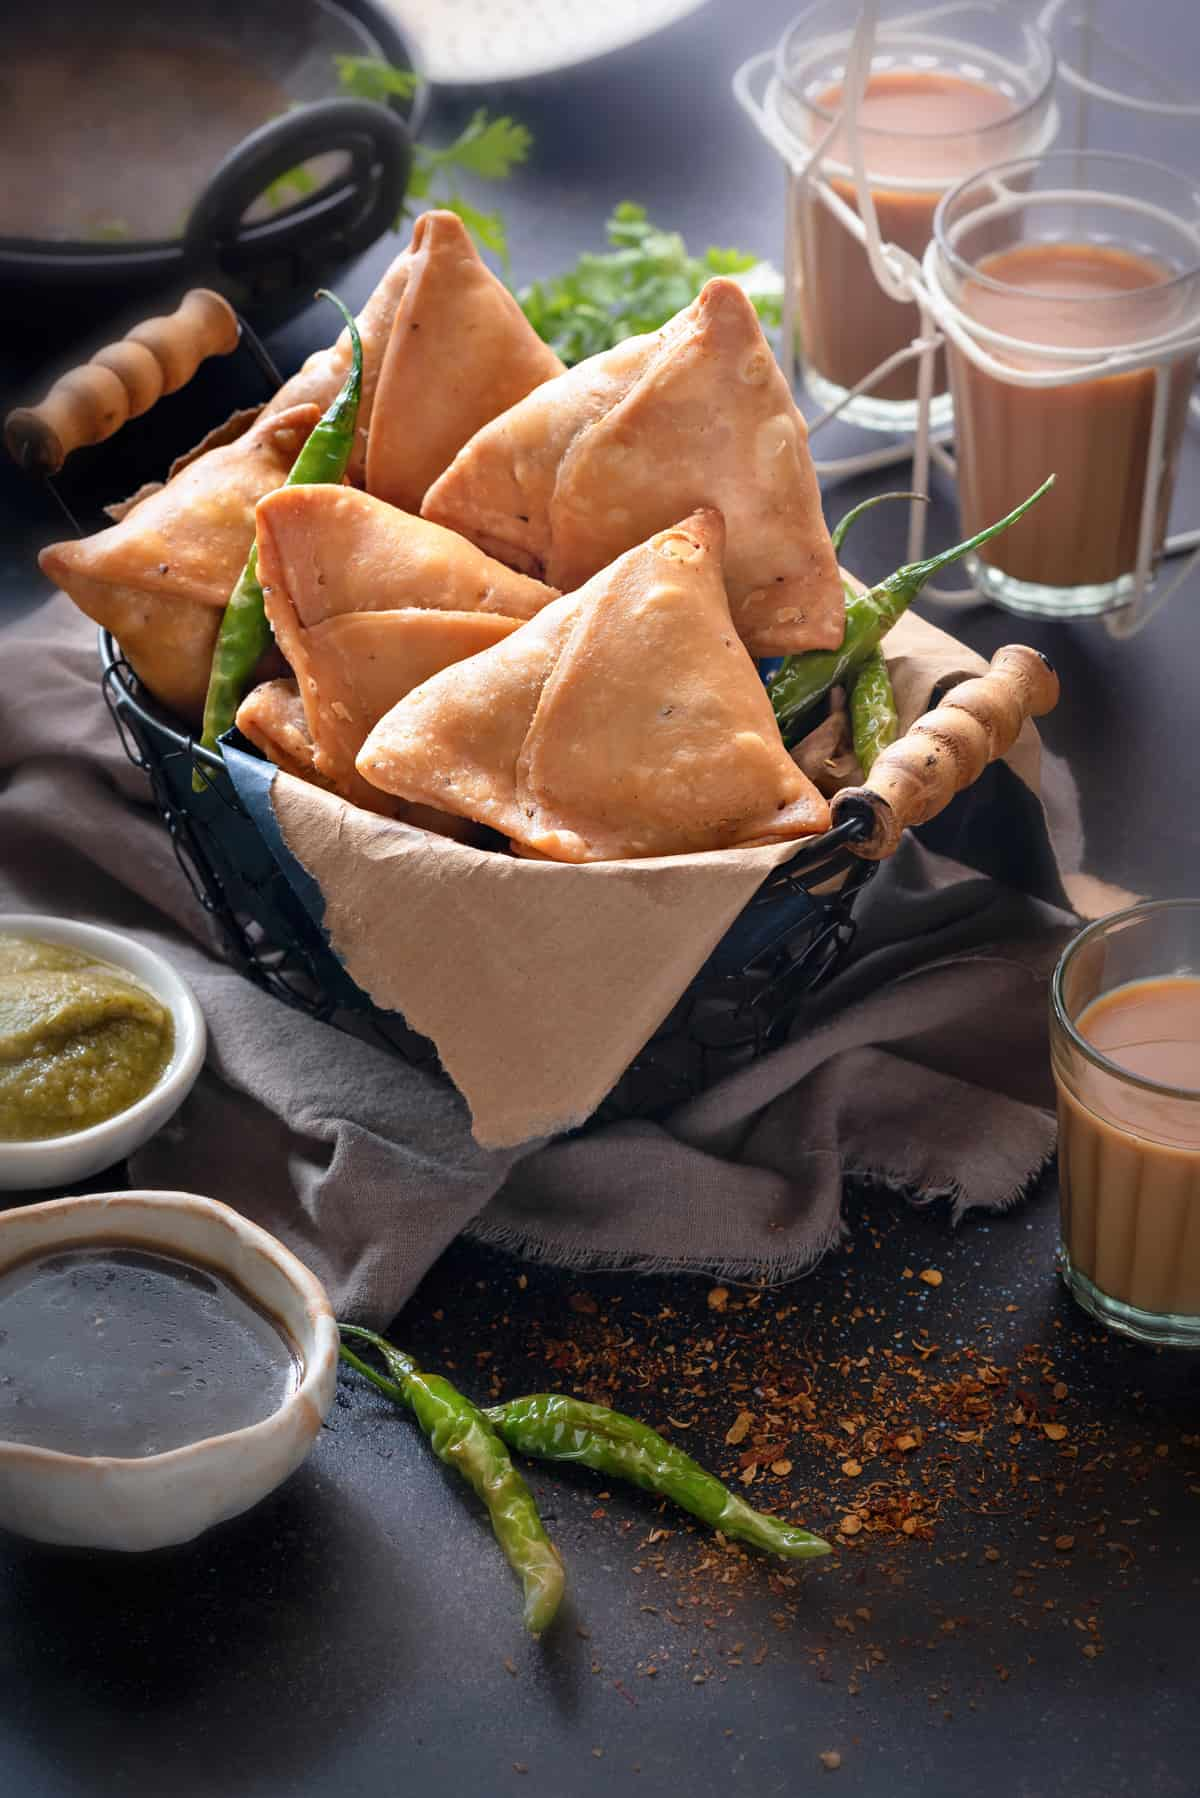 Punjabi samosas in basket, with sweet and spicy chutney, fried chilies and tea on the side.